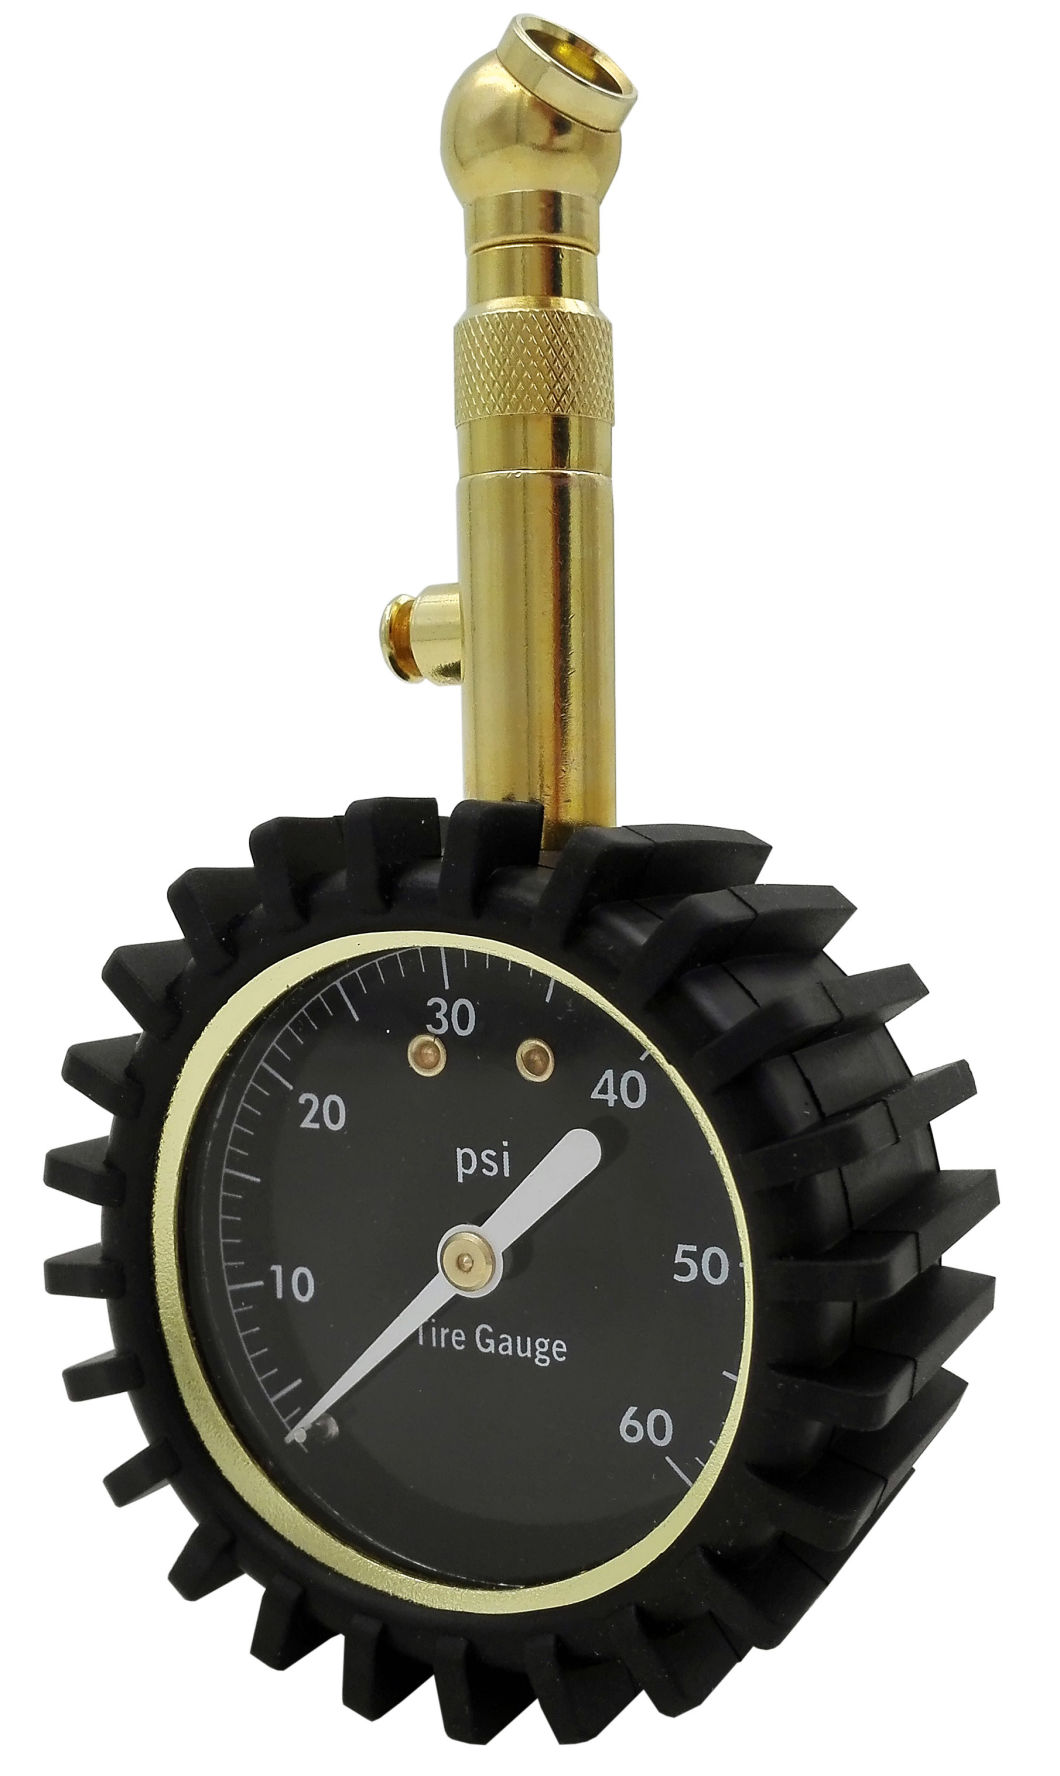 Heavy Duty Tire Pressure Gauge (0-60 PSI) - Certified ANSI Accurate with Large 2